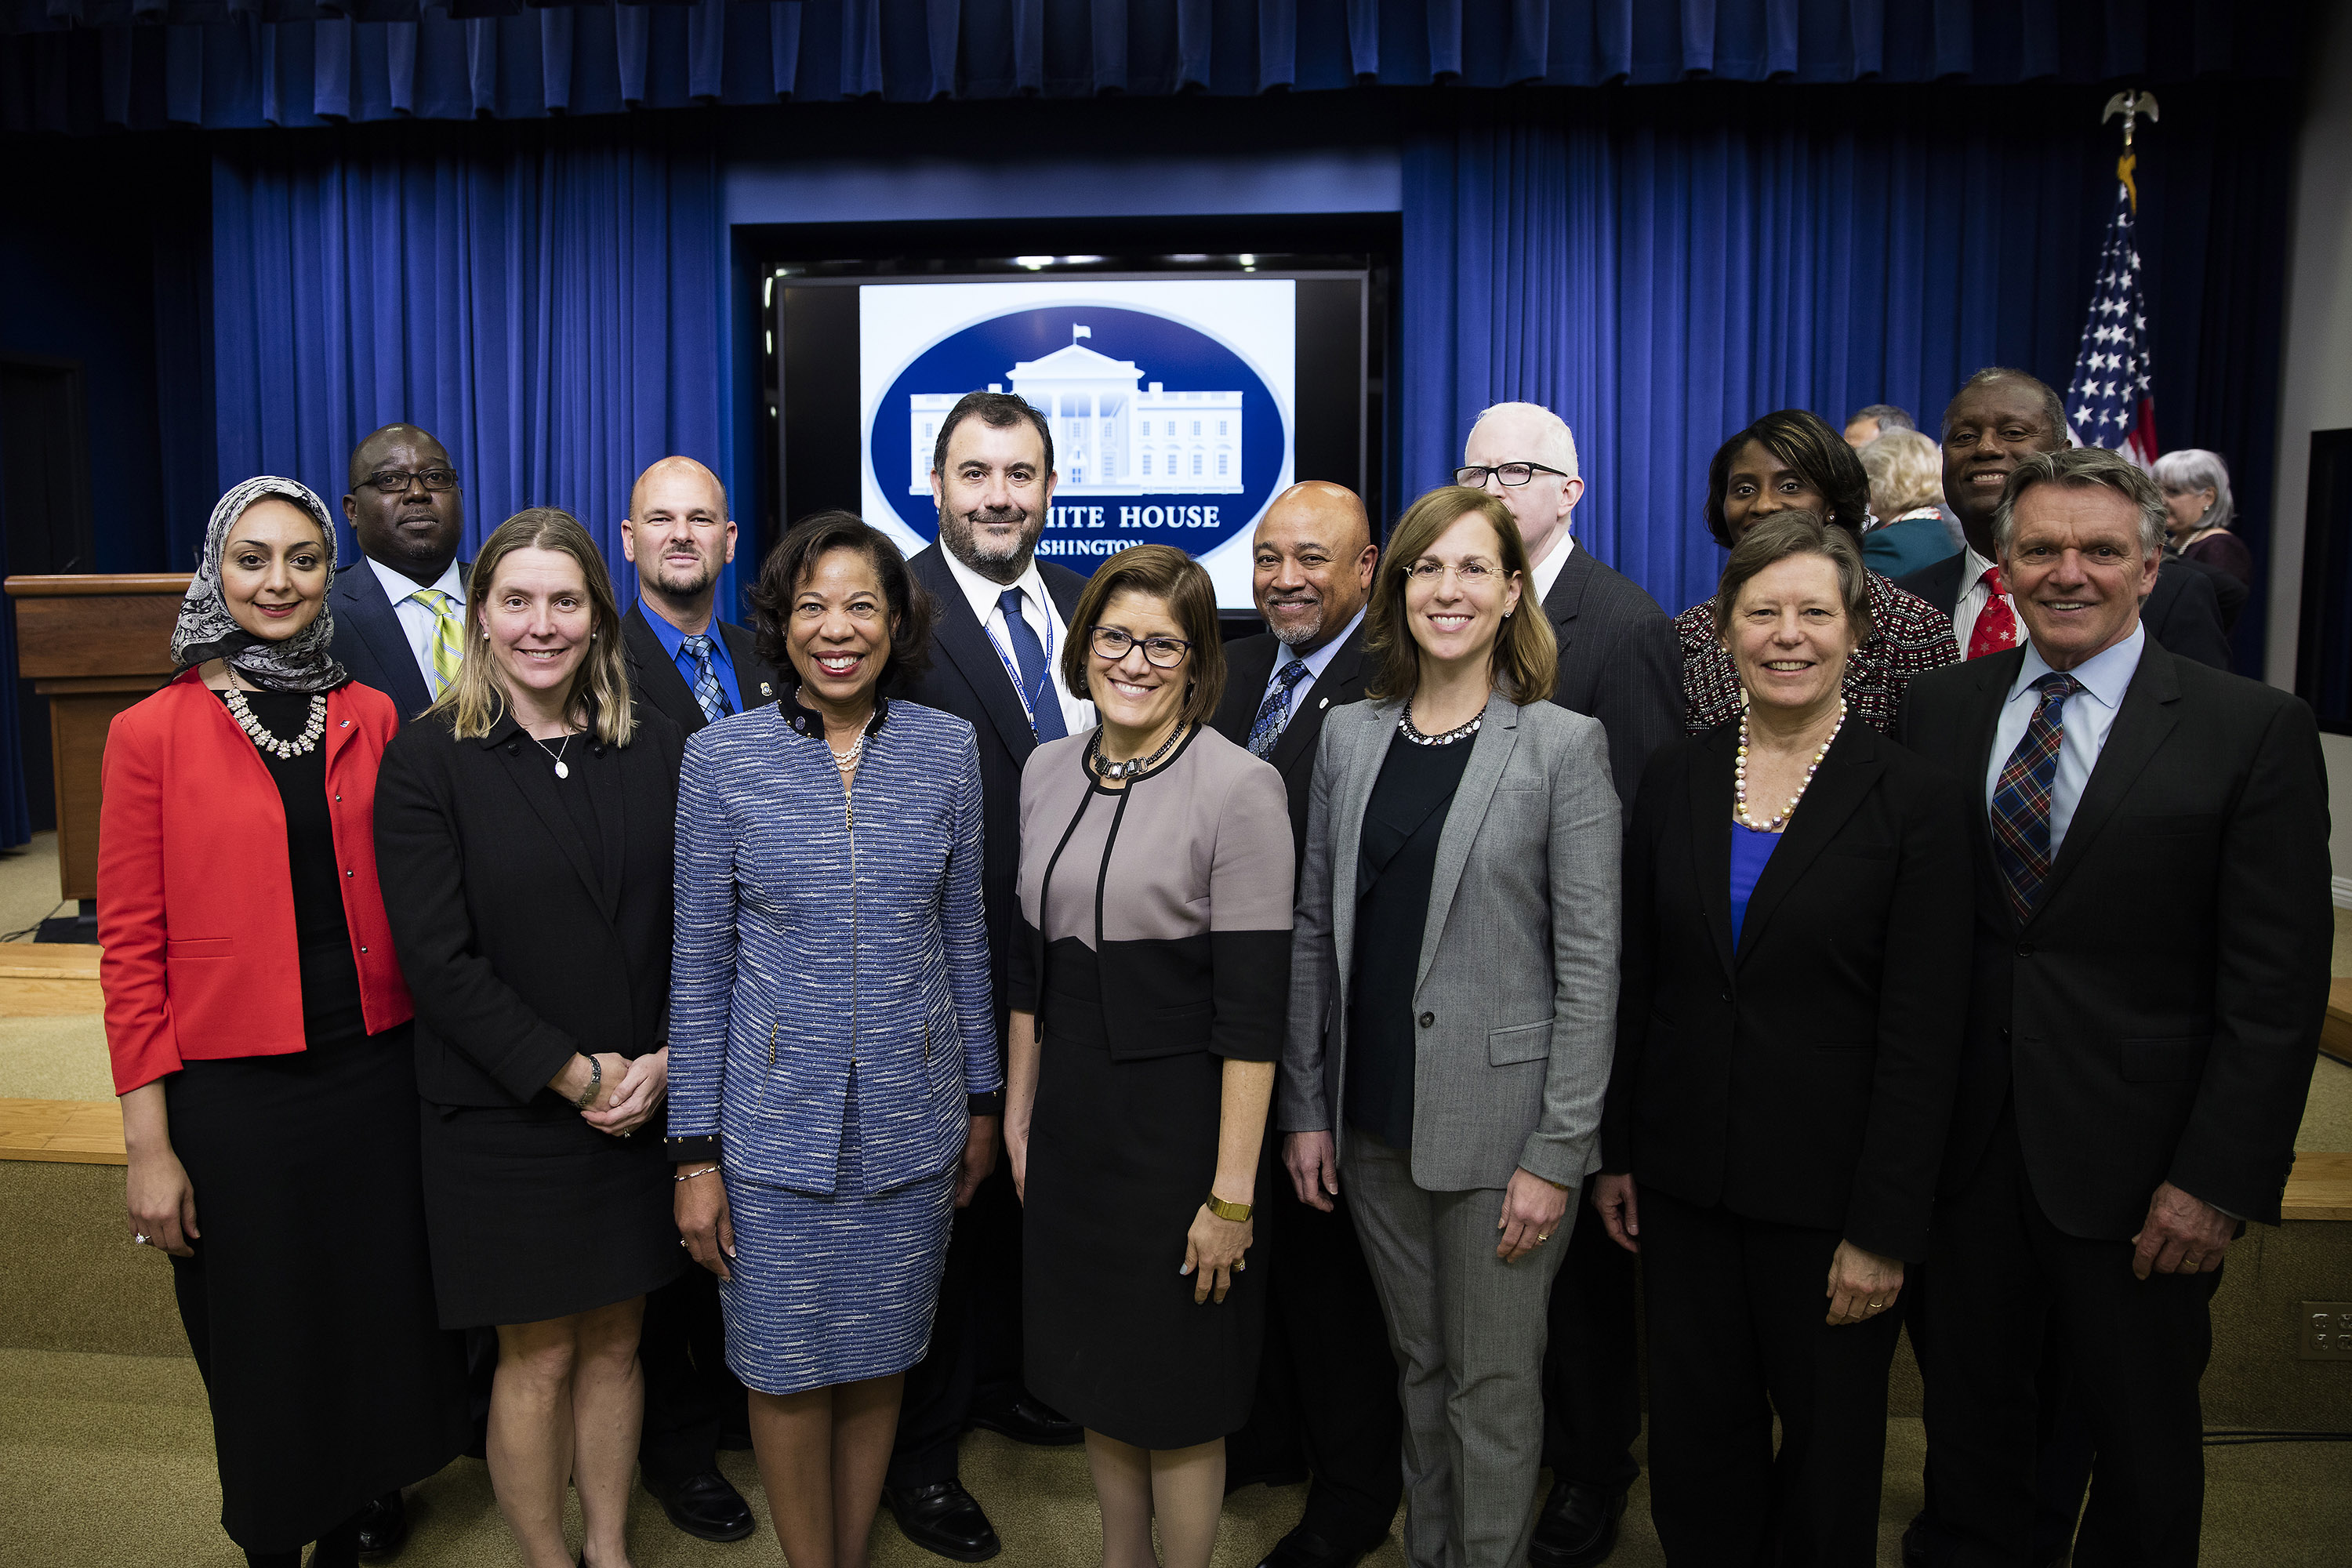 Photo of Acting Director Cobert, and Director of the White House Office of Management and Budget Shaun Donovan, along with fellow colleagues.